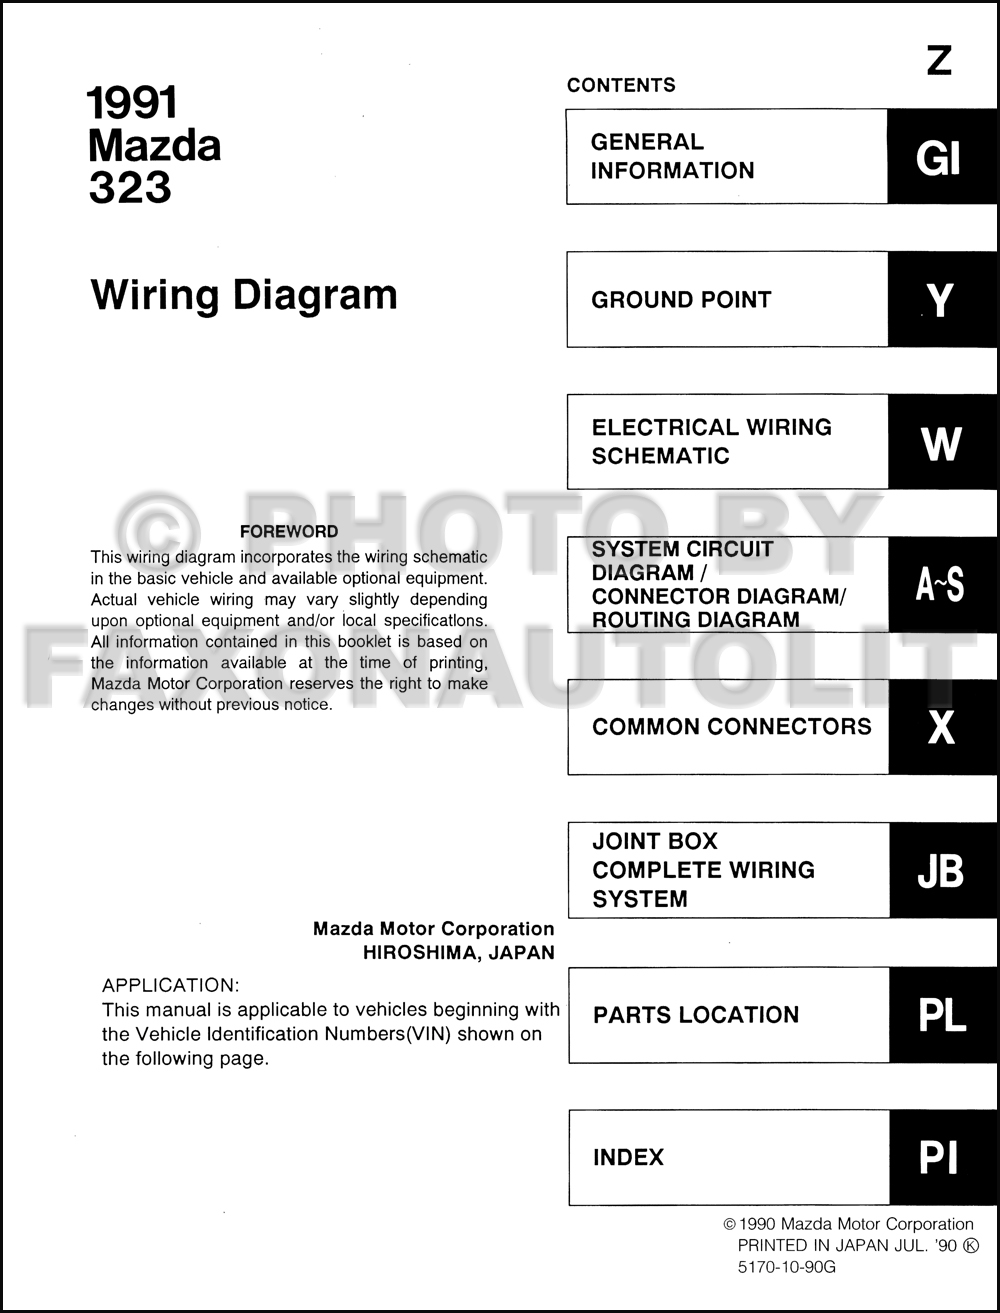 Diagram In Pictures Database 200mazda Protege Wiring Diagram Original Just Download Or Read Diagram Original Michael R Ziegler Hilites Apollo Pro Wiring Onyxum Com